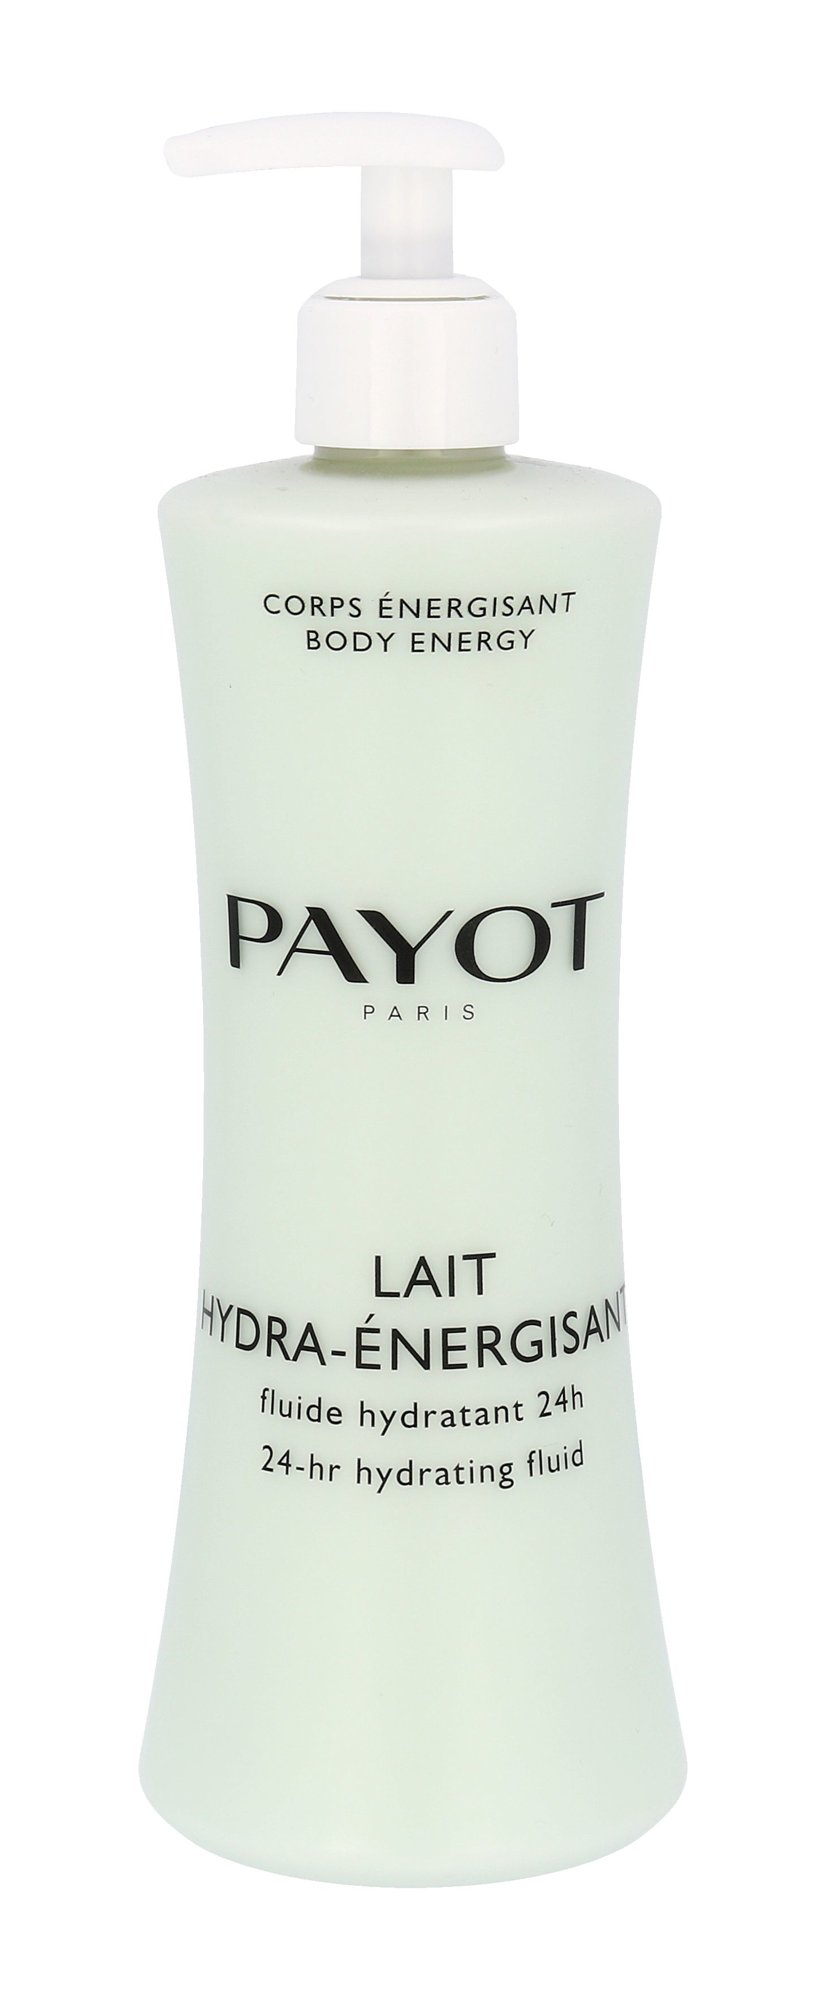 PAYOT Corps Energisant Body Lotion 400ml  24hr Hydrating Fluid